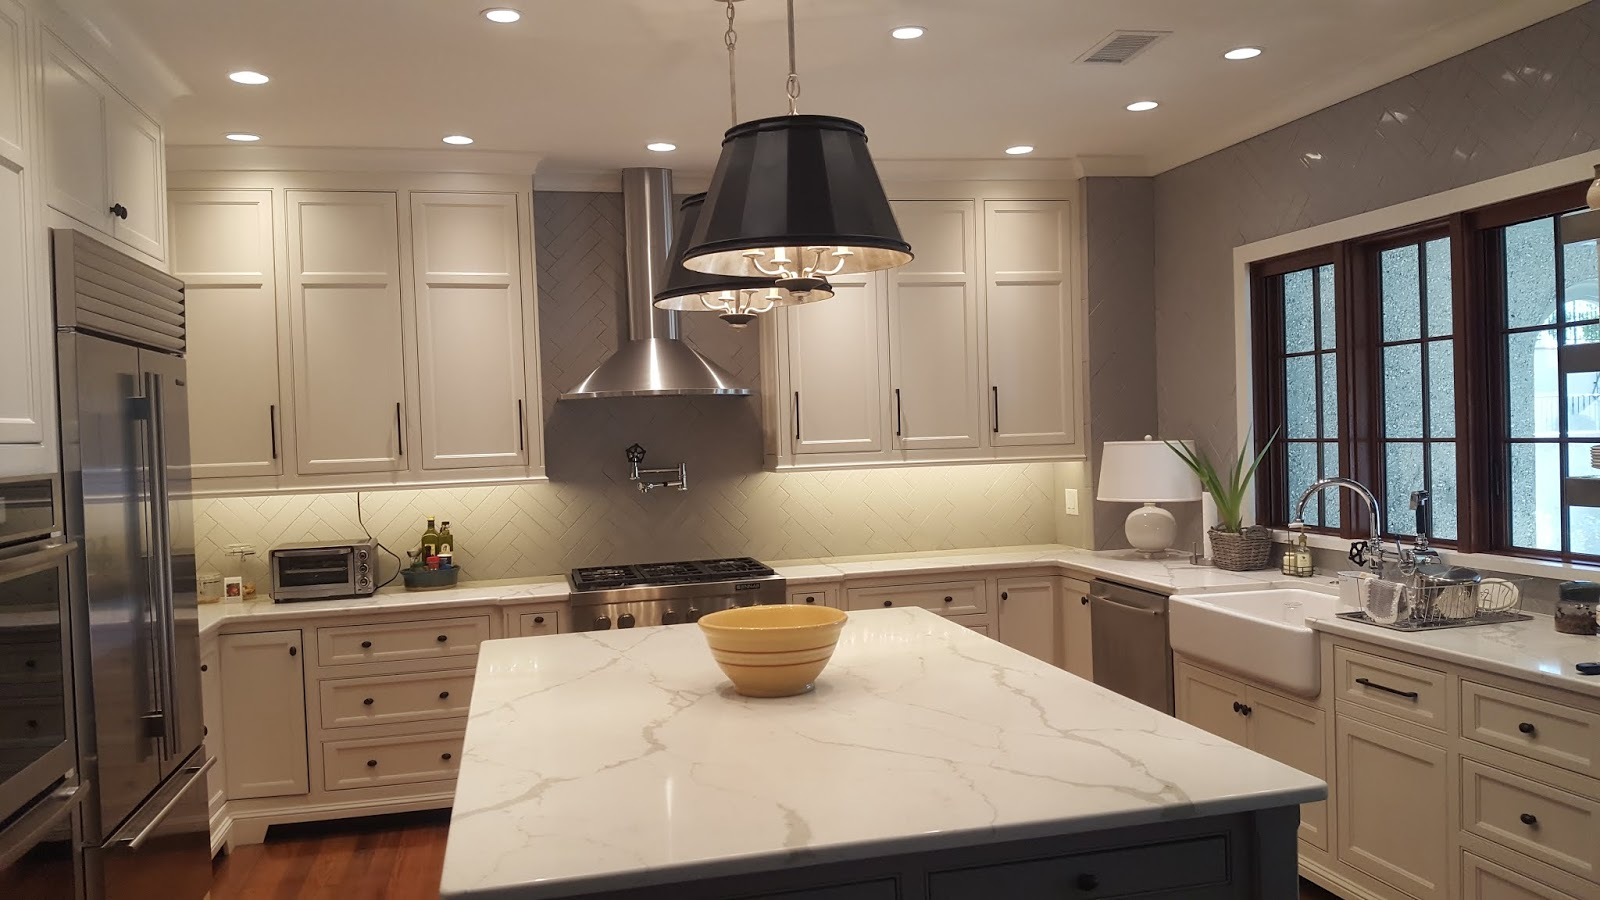 BEST Kitchen Lighting | Kennedy Kitchens & Baths